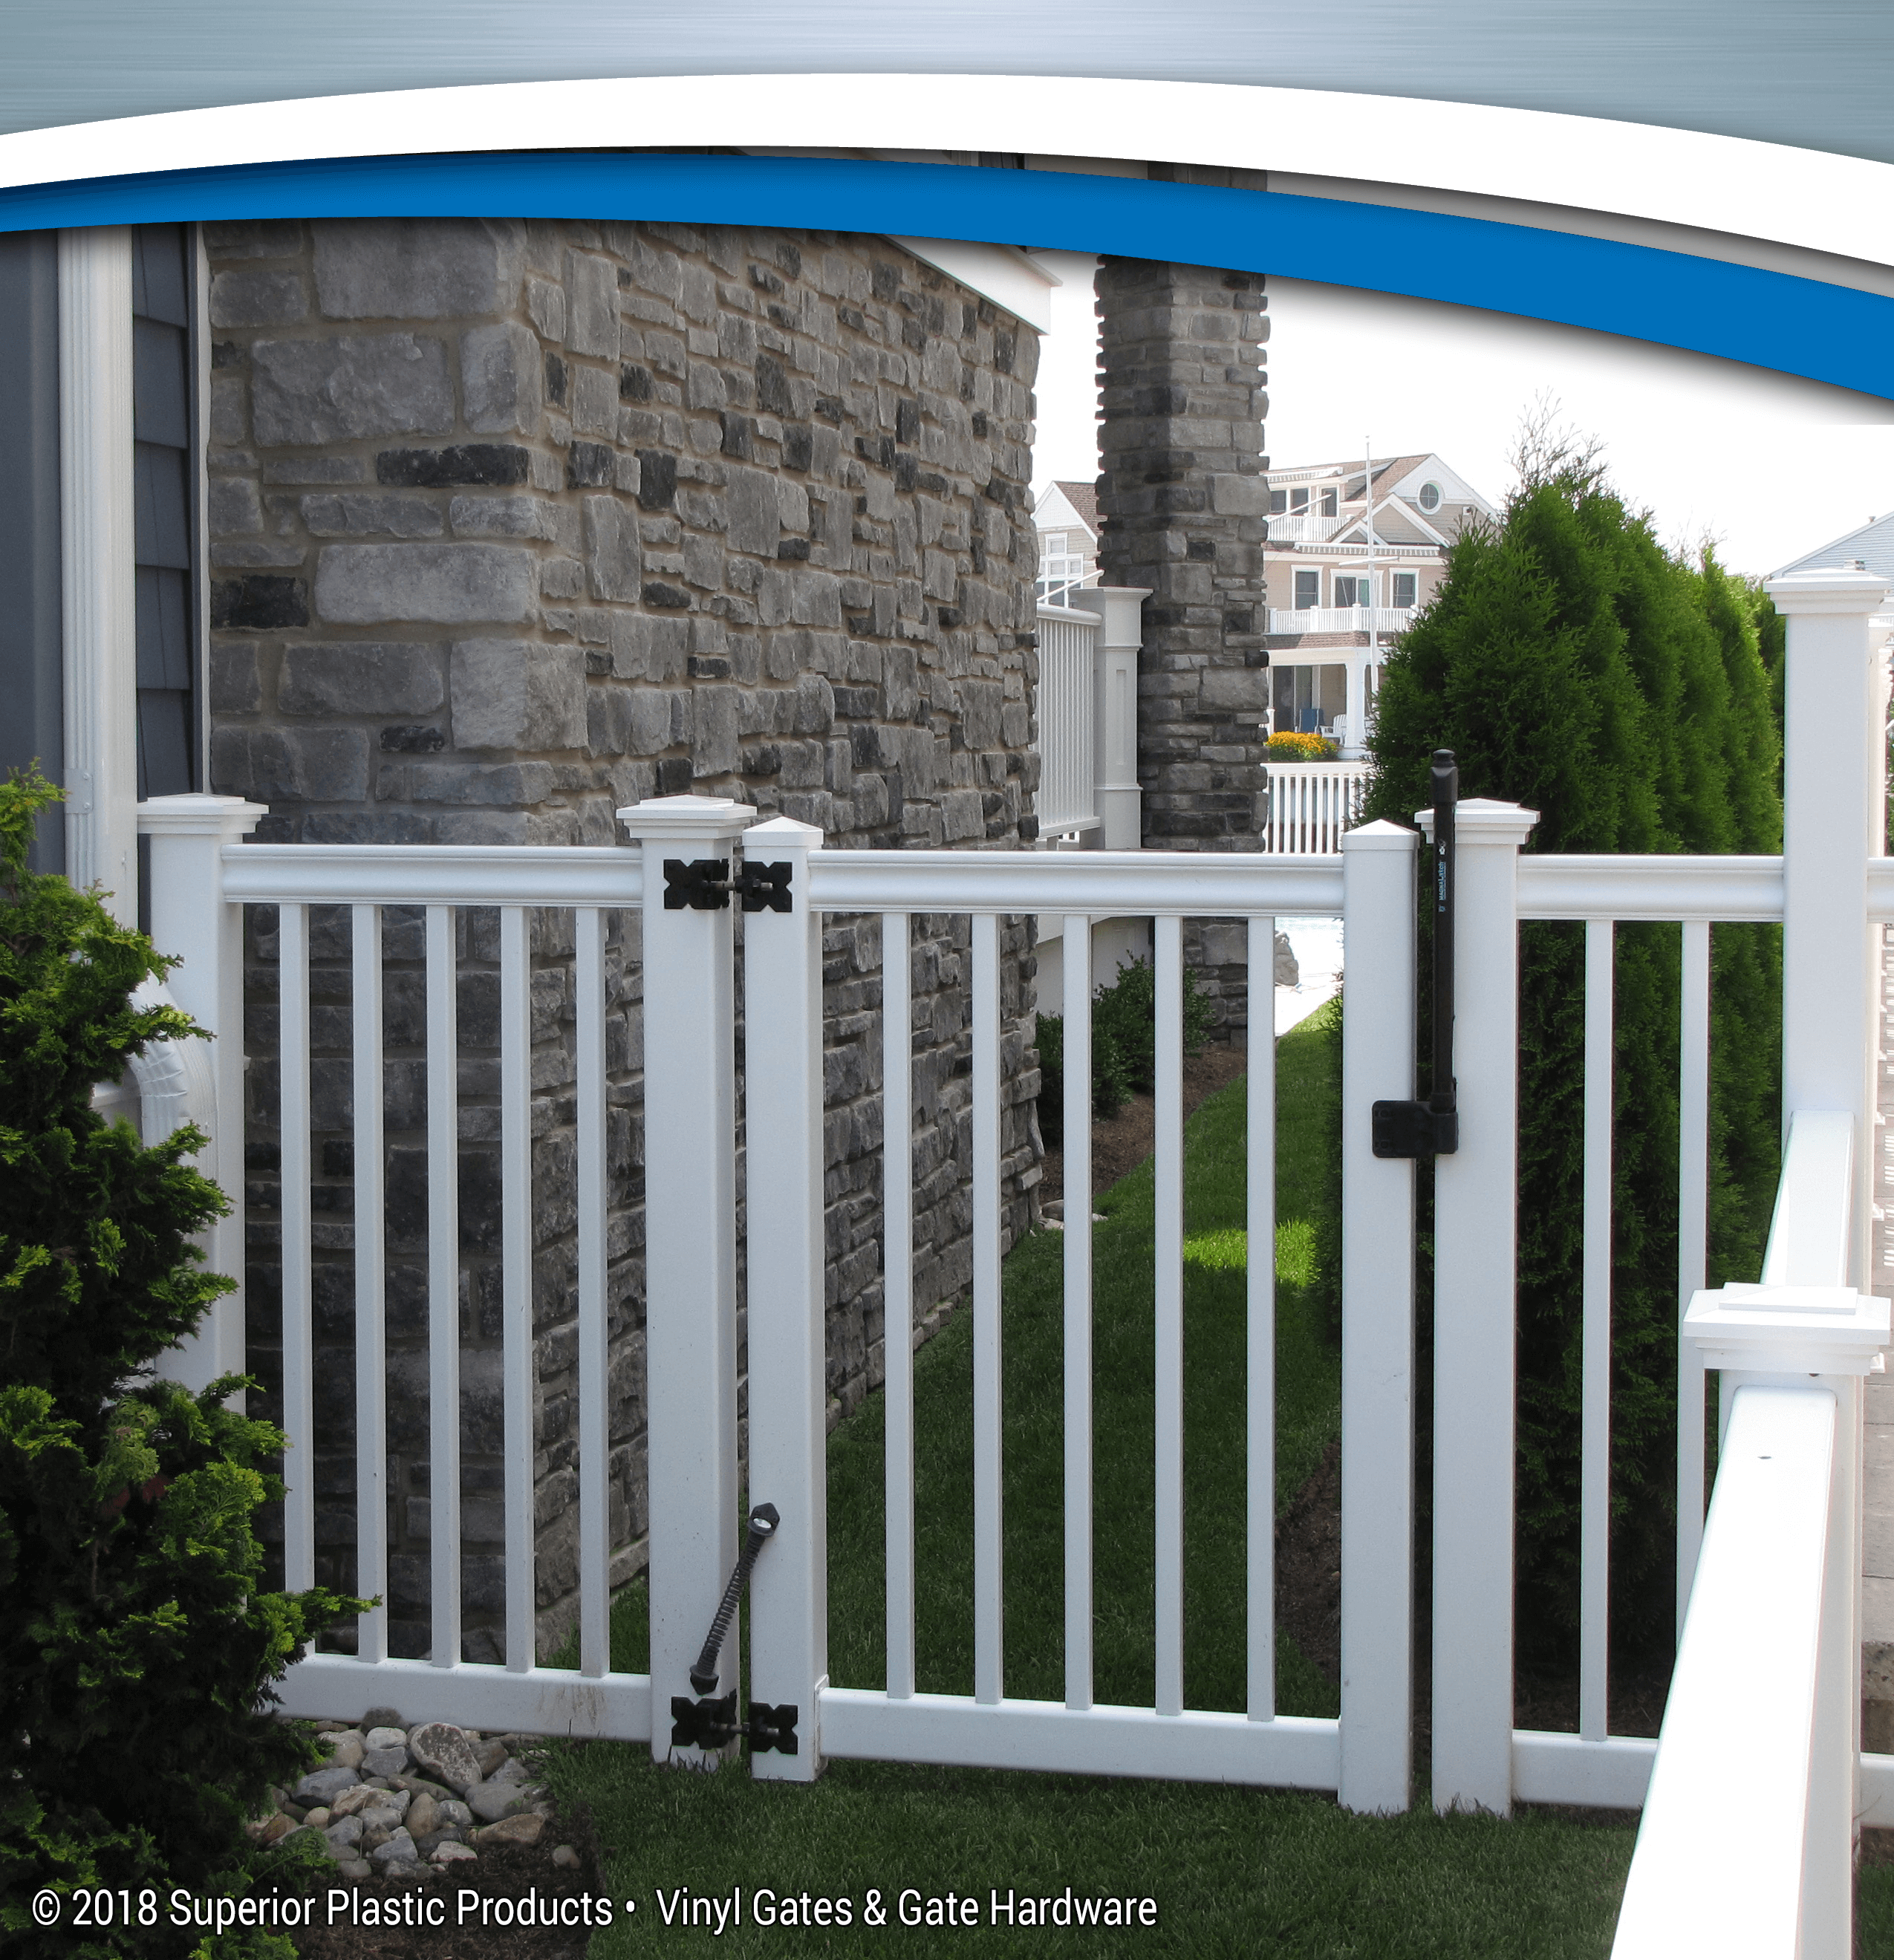 Vinyl Gates - Gate Hardware - Superior Plastic Products